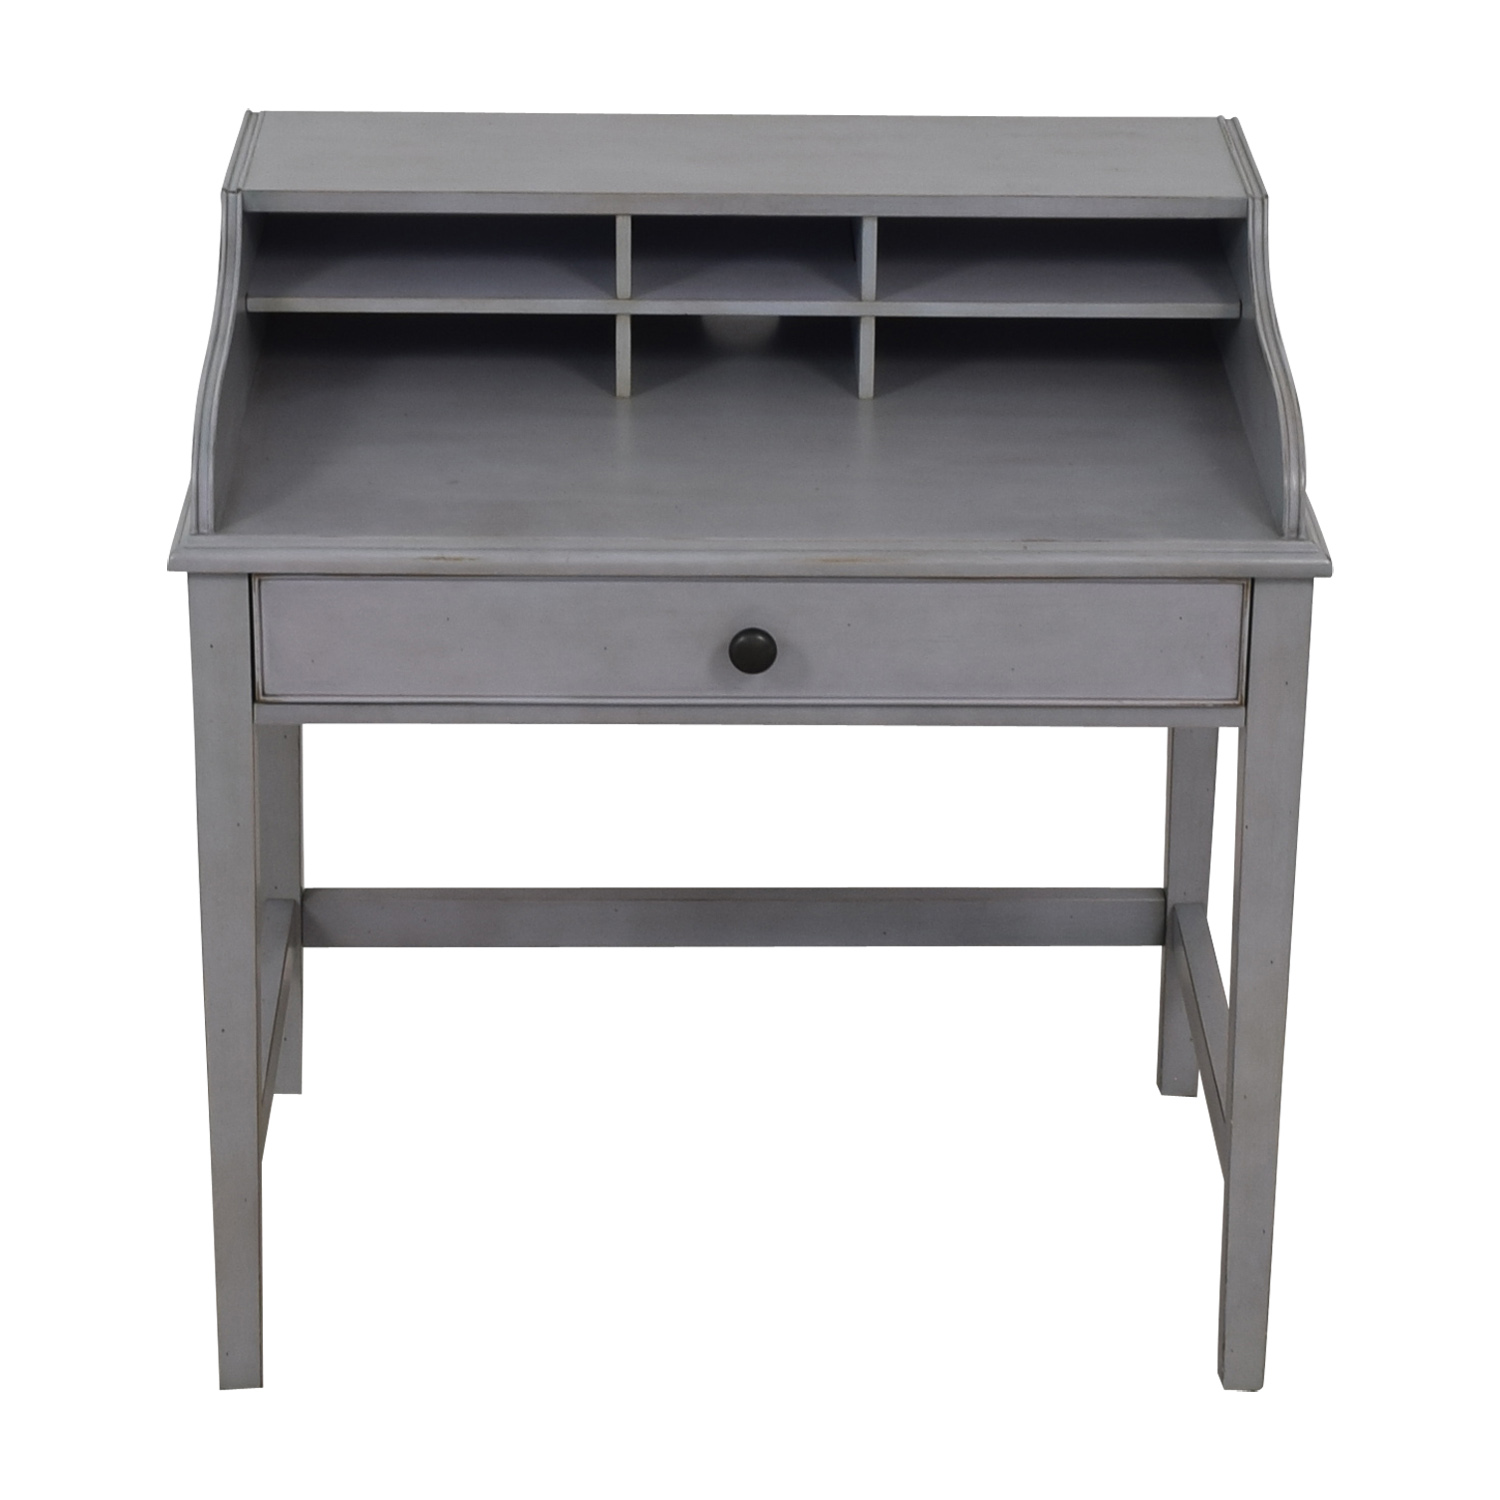 Pottery Barn Pottery Barn Jacqueline Single Pull-out Tray Grey Desk used